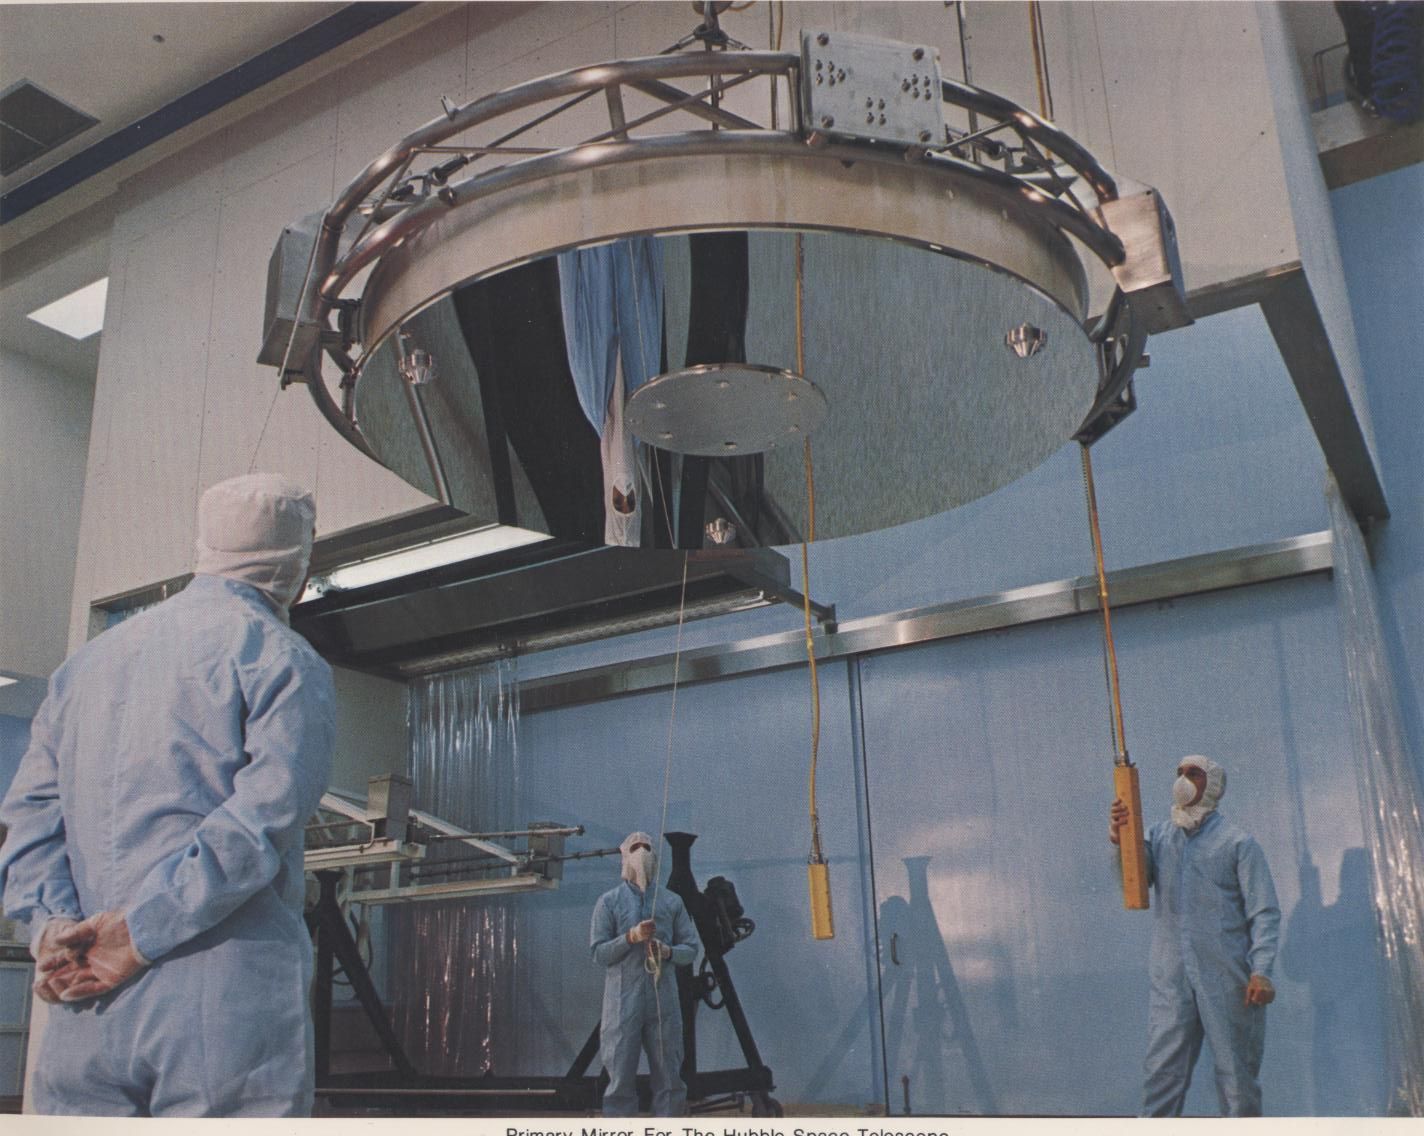 The Hubble primary mirror being installed